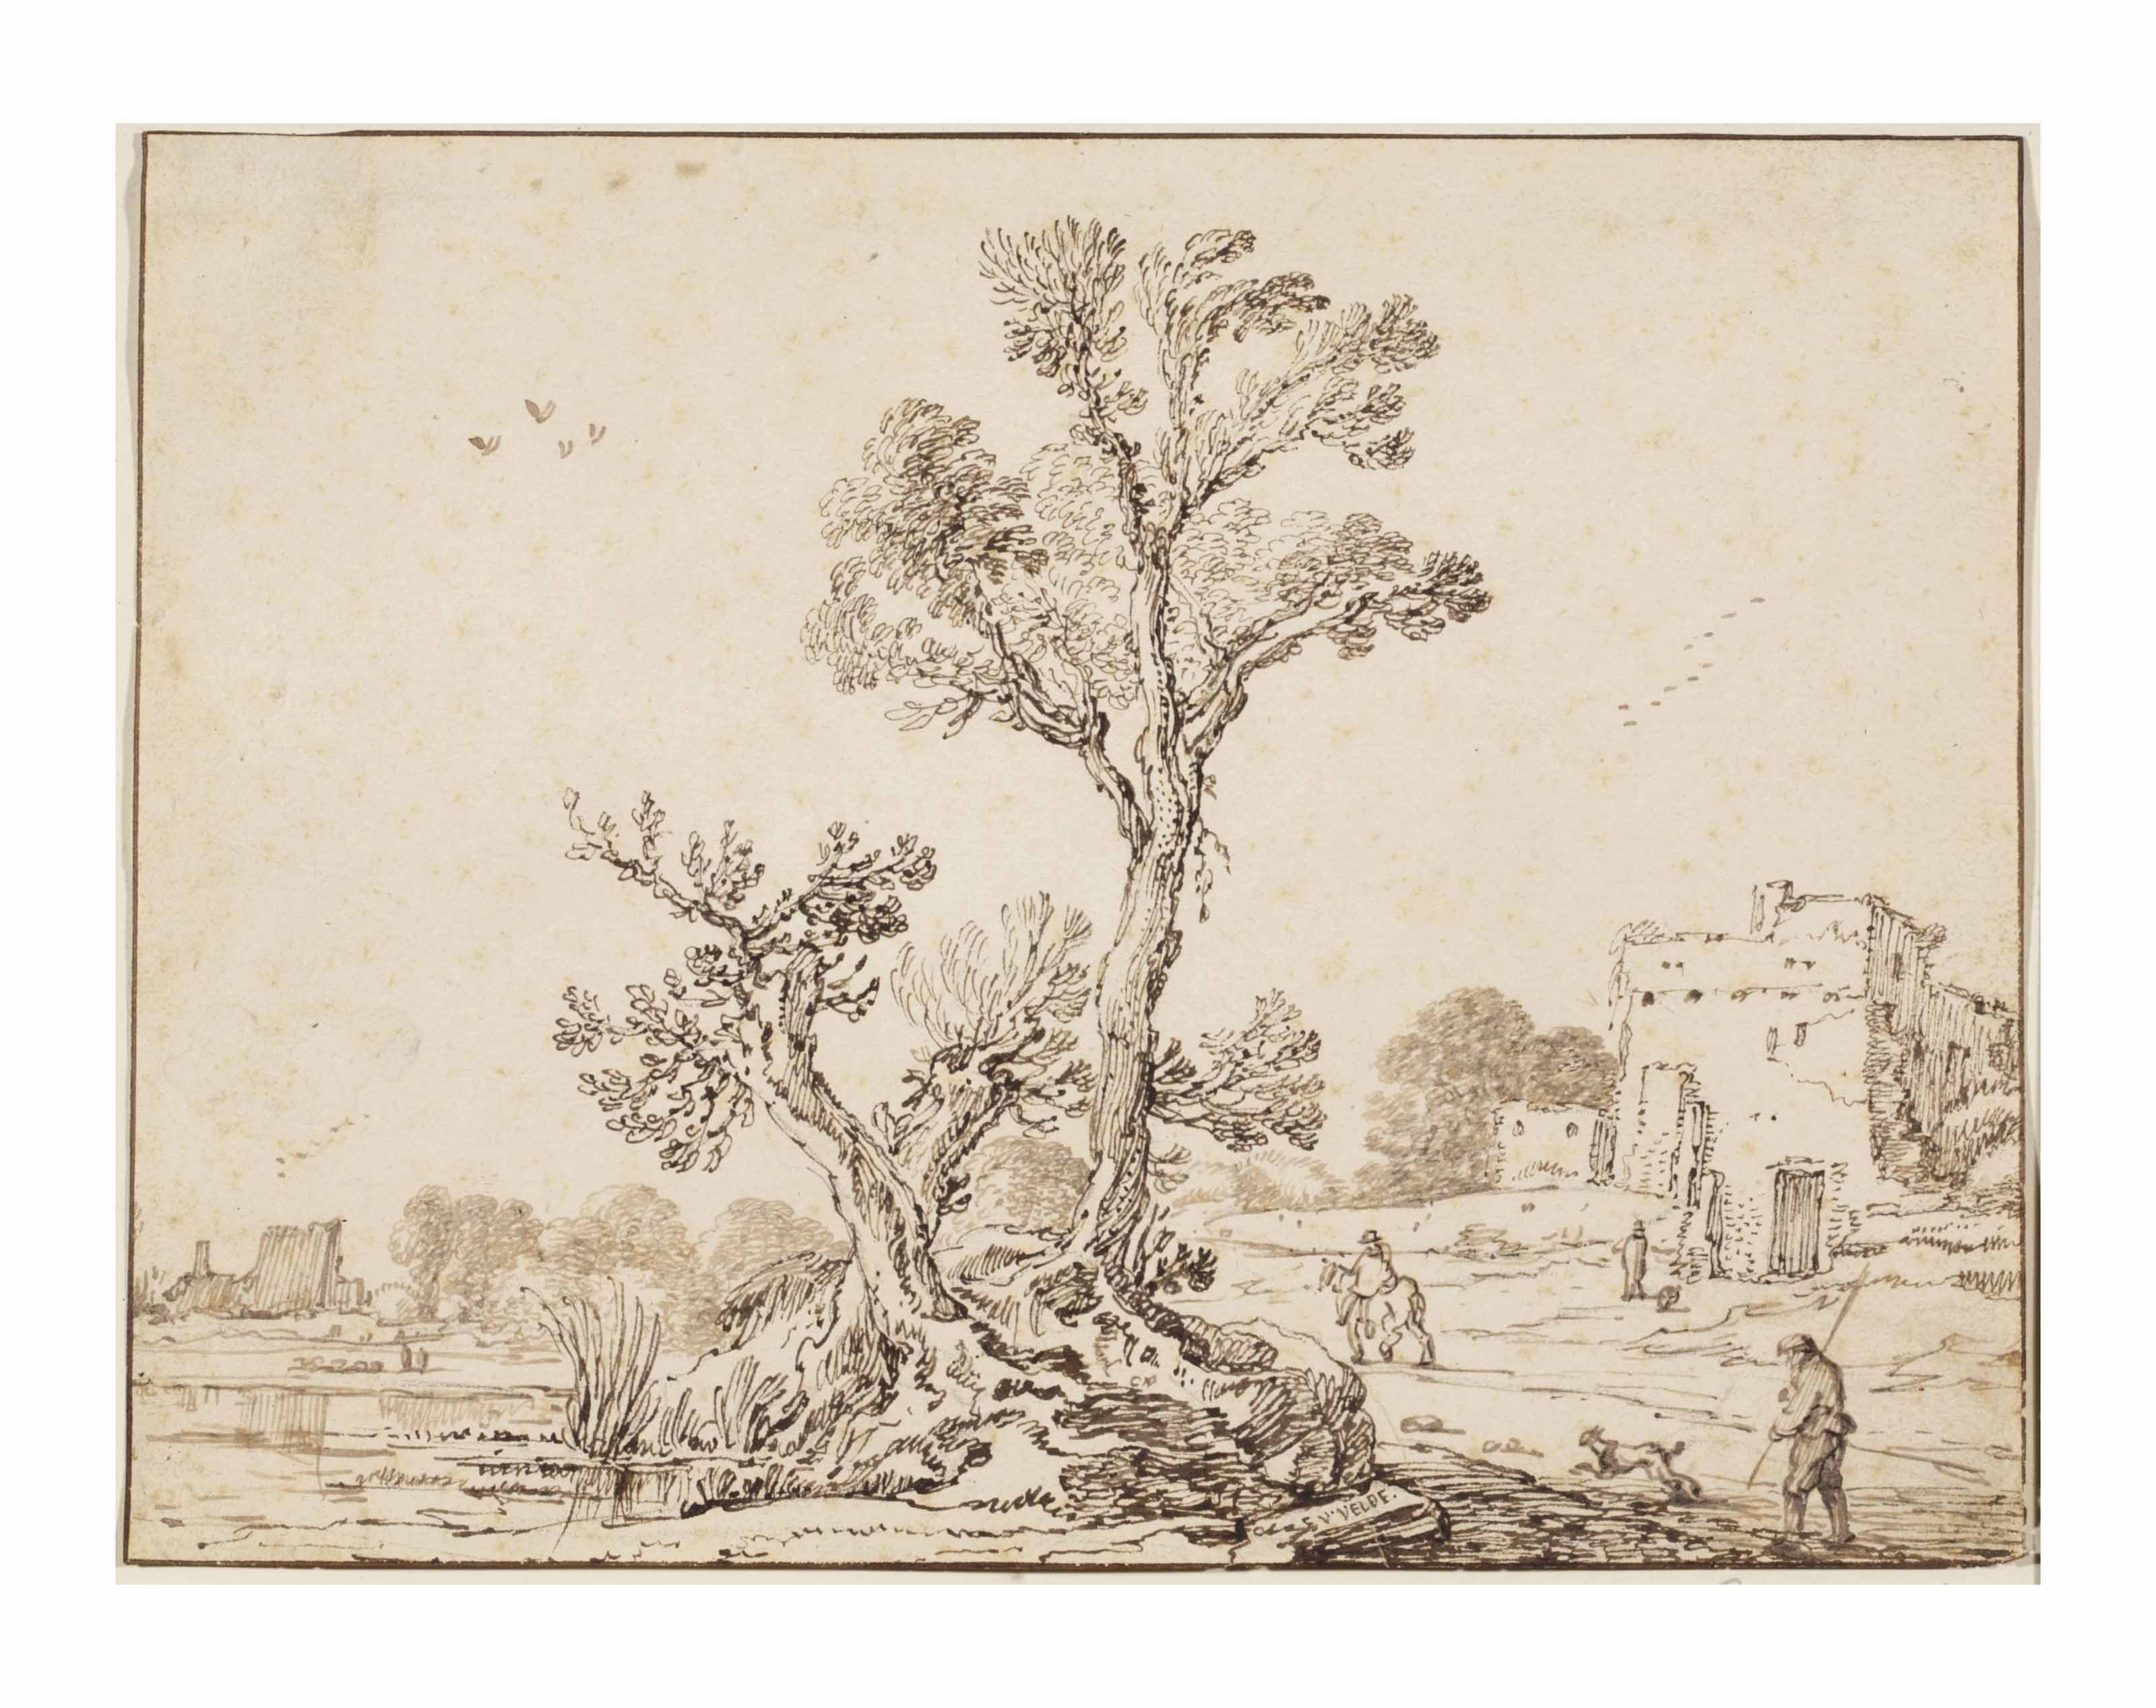 A landscape with a group of trees by a river